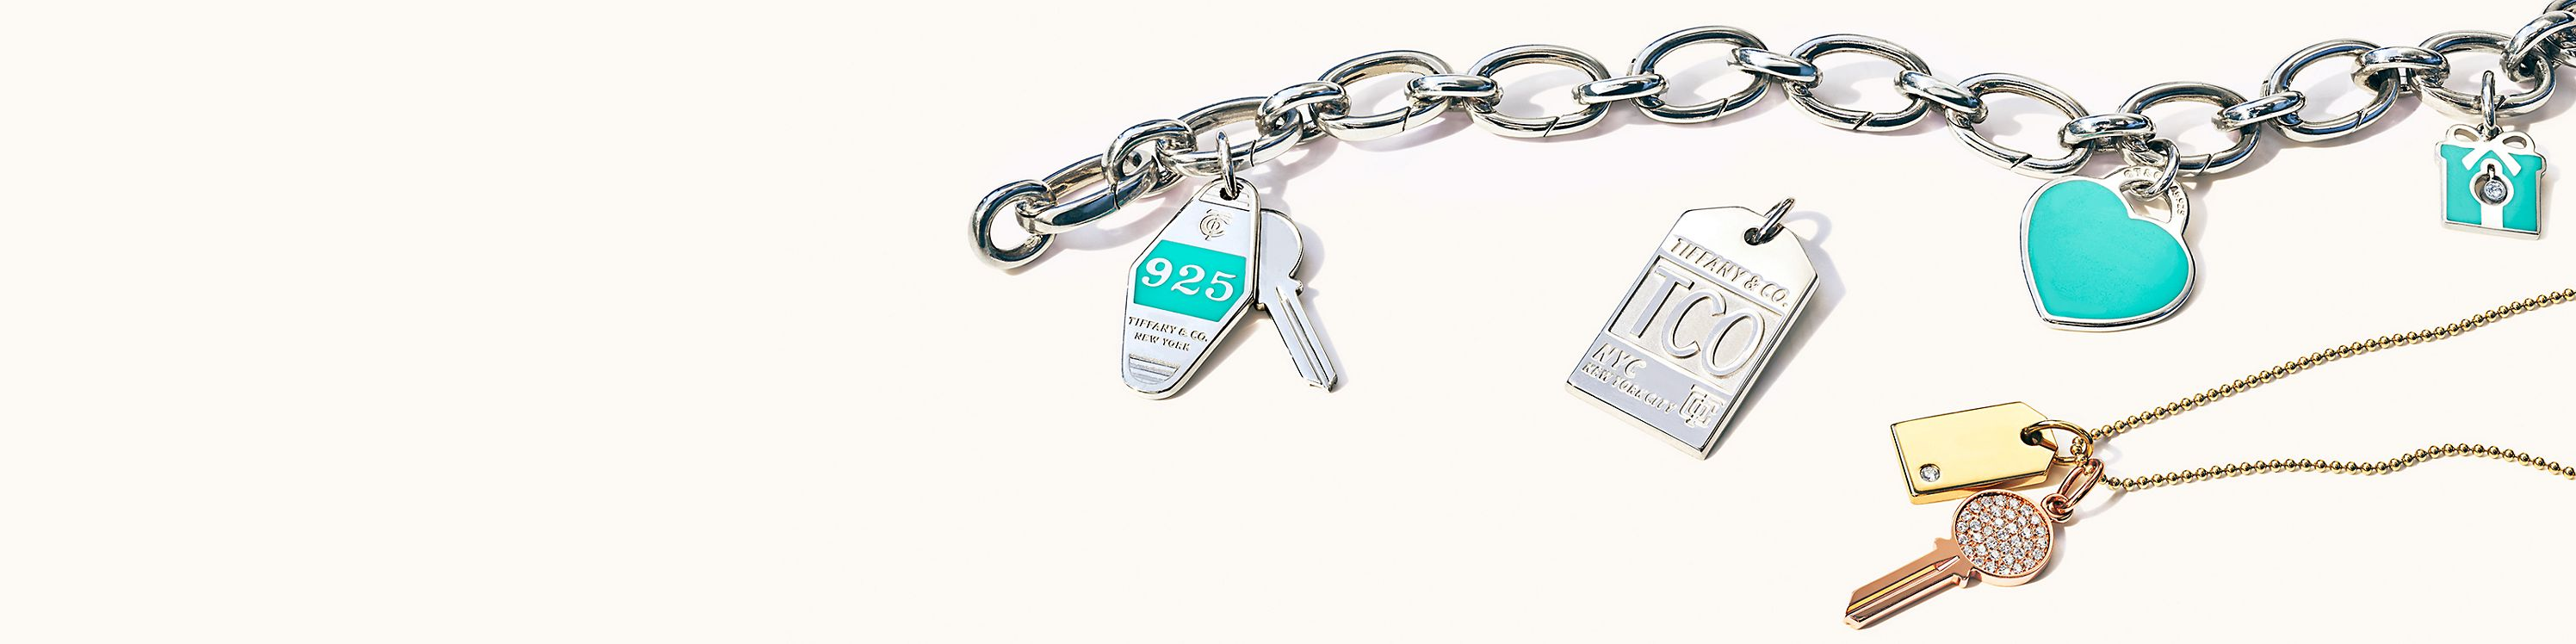 incontrare 428ec d2231 Ciondoli per bracciali e collane | Tiffany & Co.